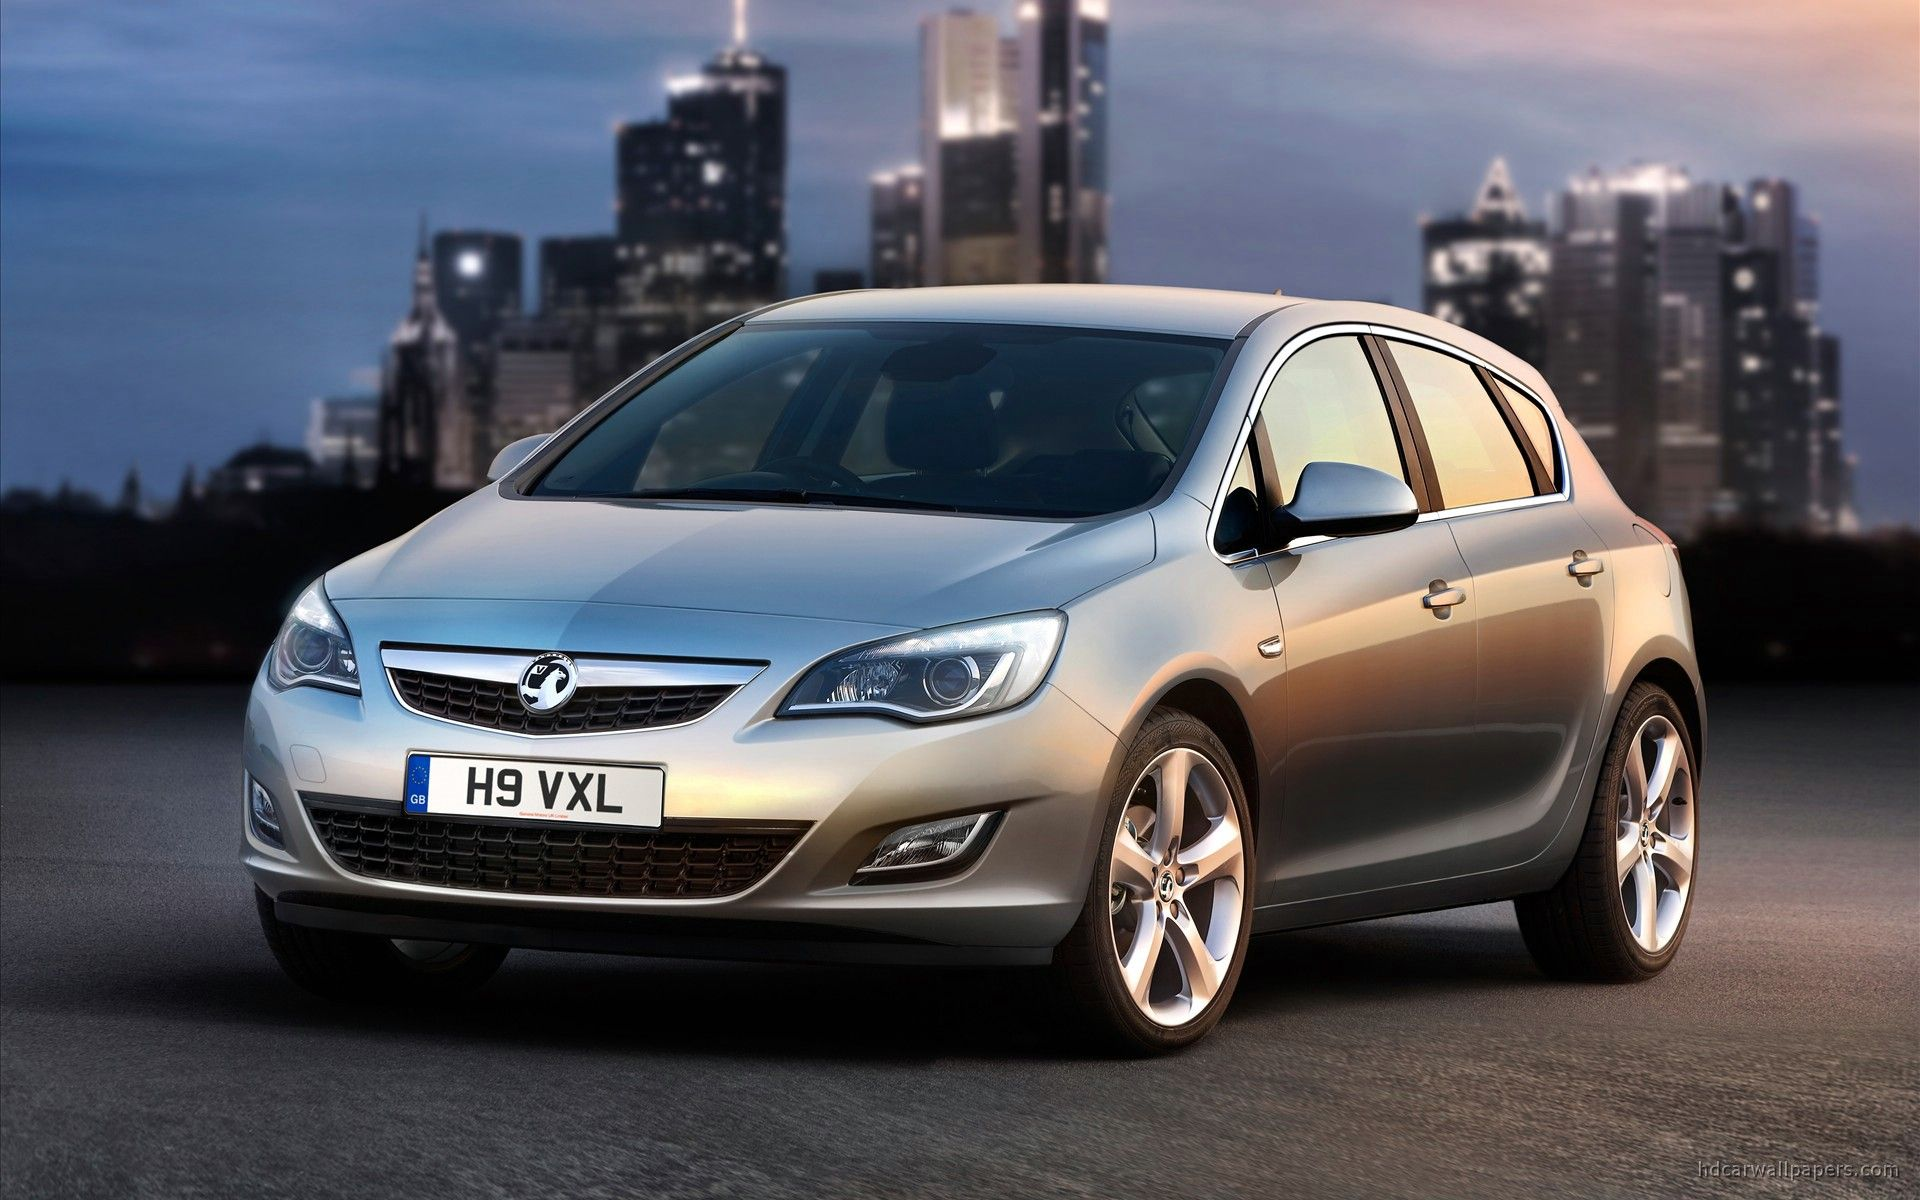 2010 Vauxhall Astra Wallpaper | HD Car Wallpapers